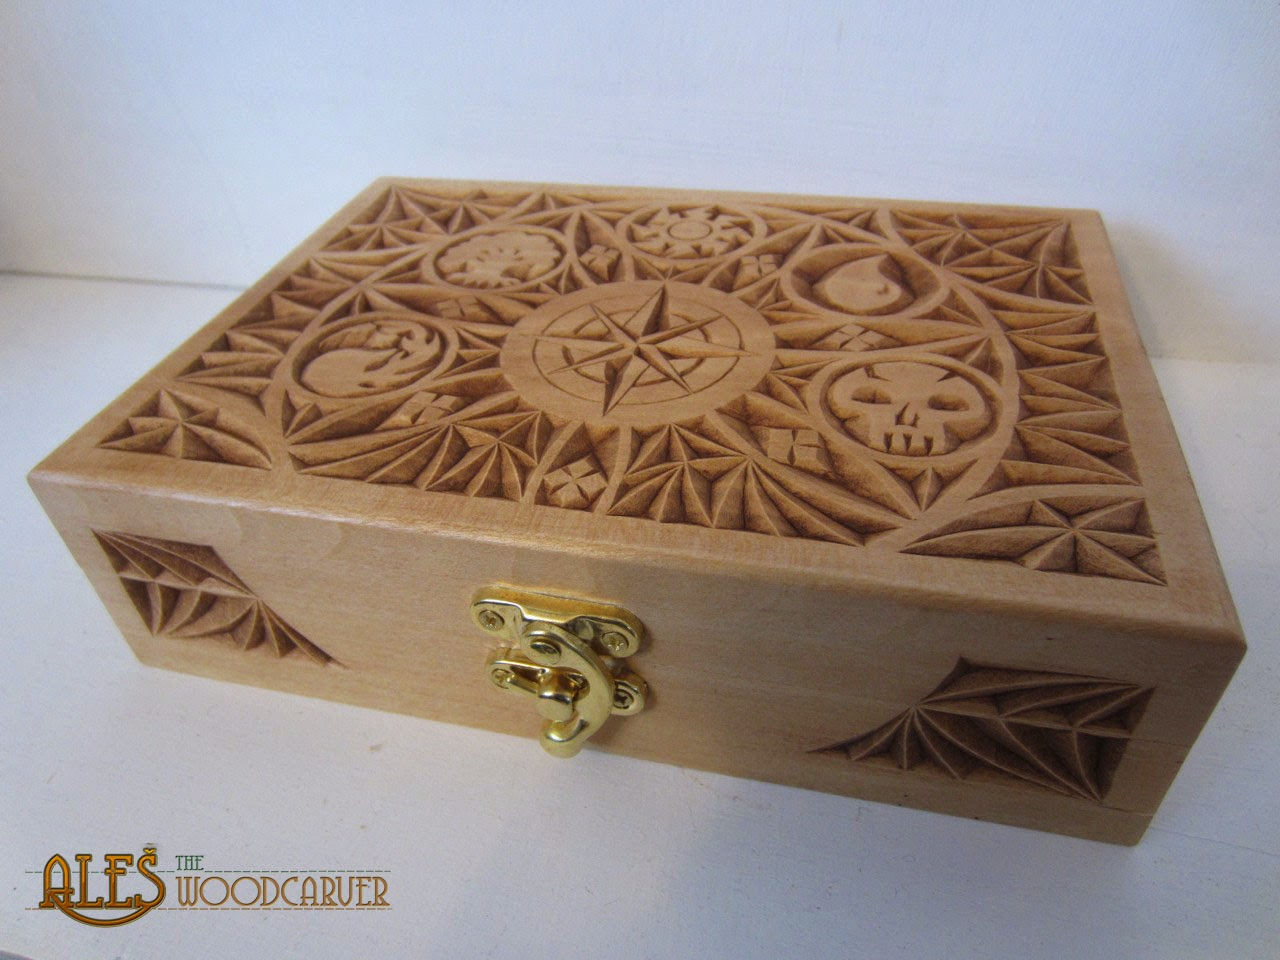 Ales the woodcarver card boxes for mtg commander decks